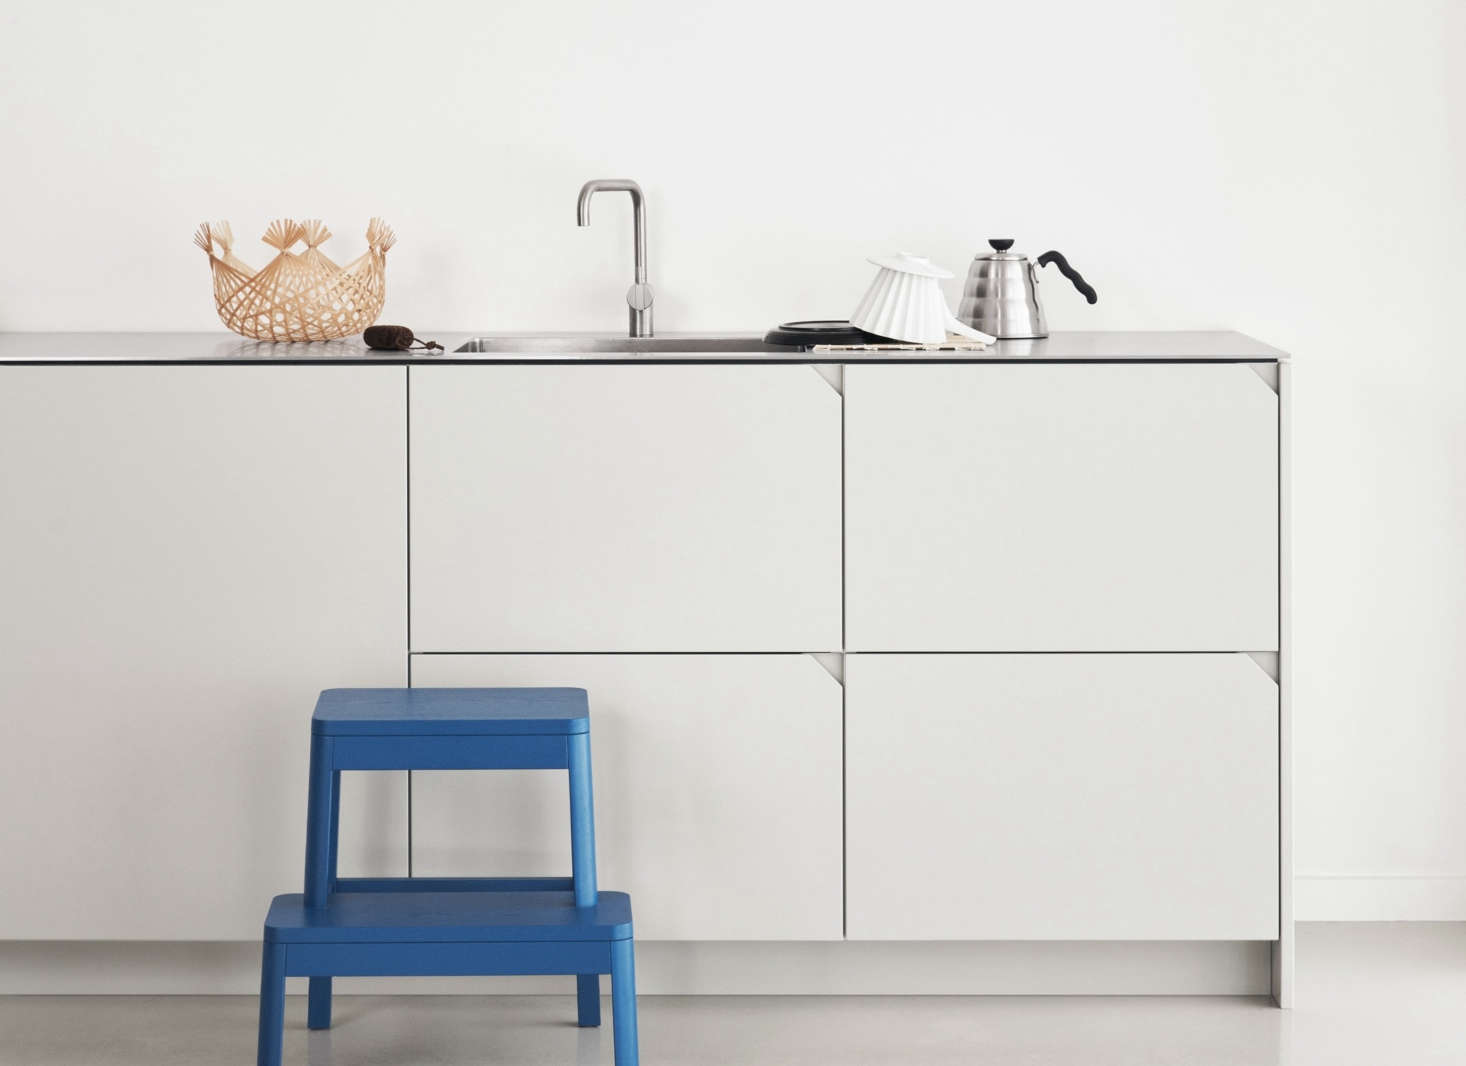 Ikea Küche Hack Take A Look At A Stylish Ikea Kitchen Hack By Designer Cecilie